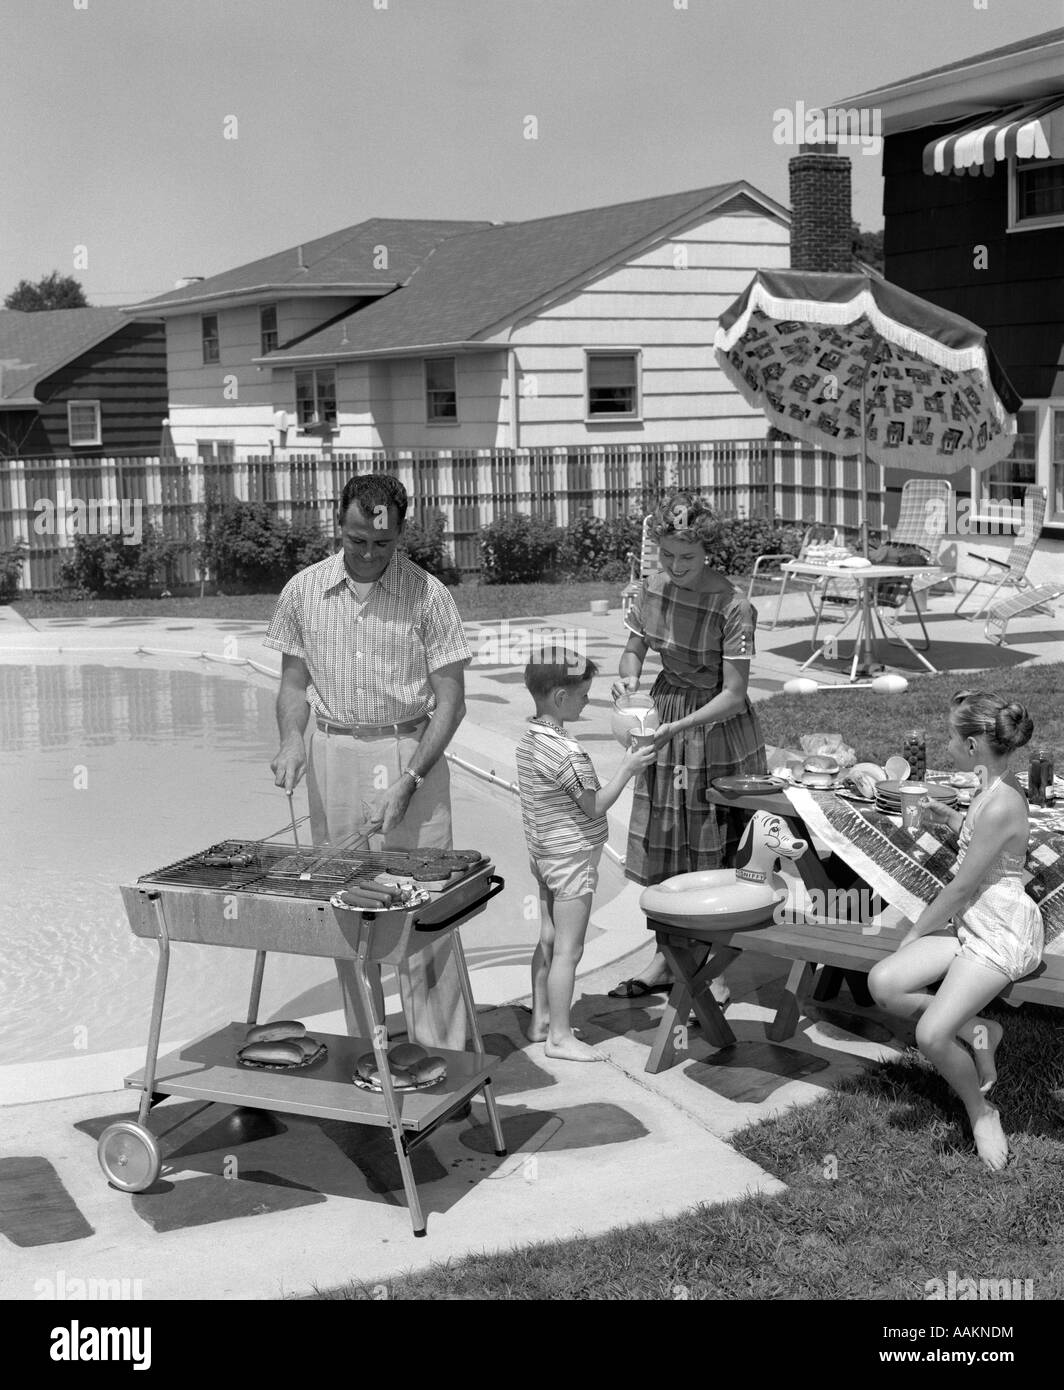 1950s FAMILY IN BACKYARD BESIDE POOL HAVING COOKOUT OF HOT DOGS & HAMBURGERS - Stock Image